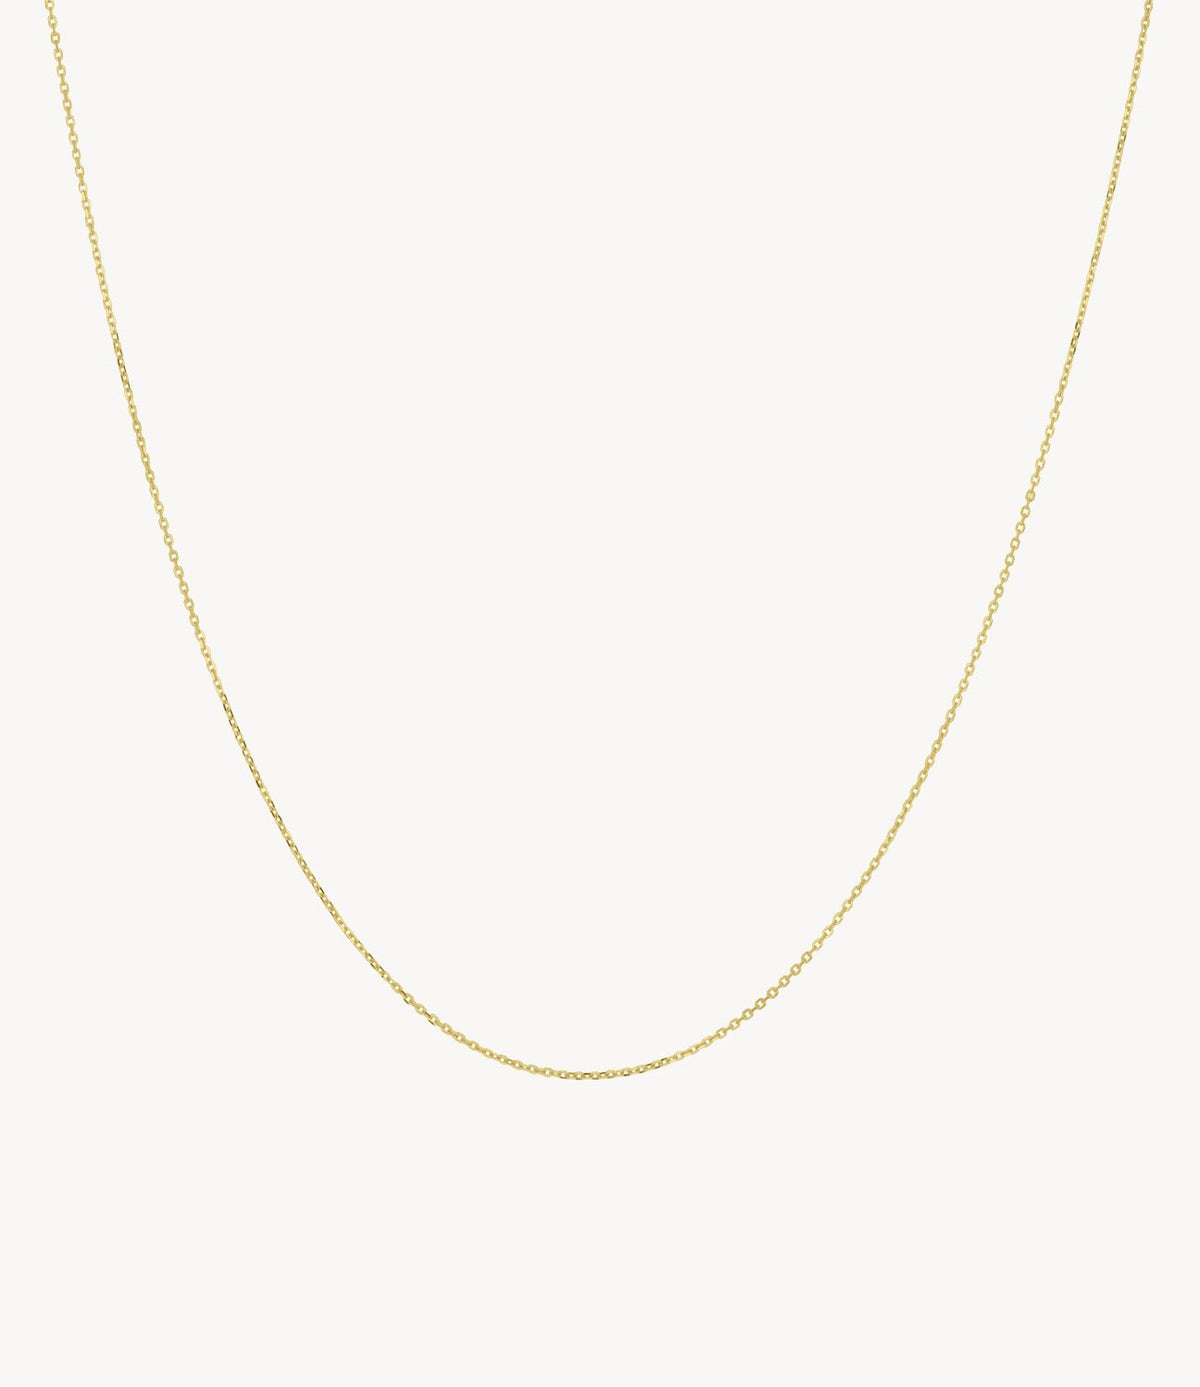 Yellow Gold, Thin Chain